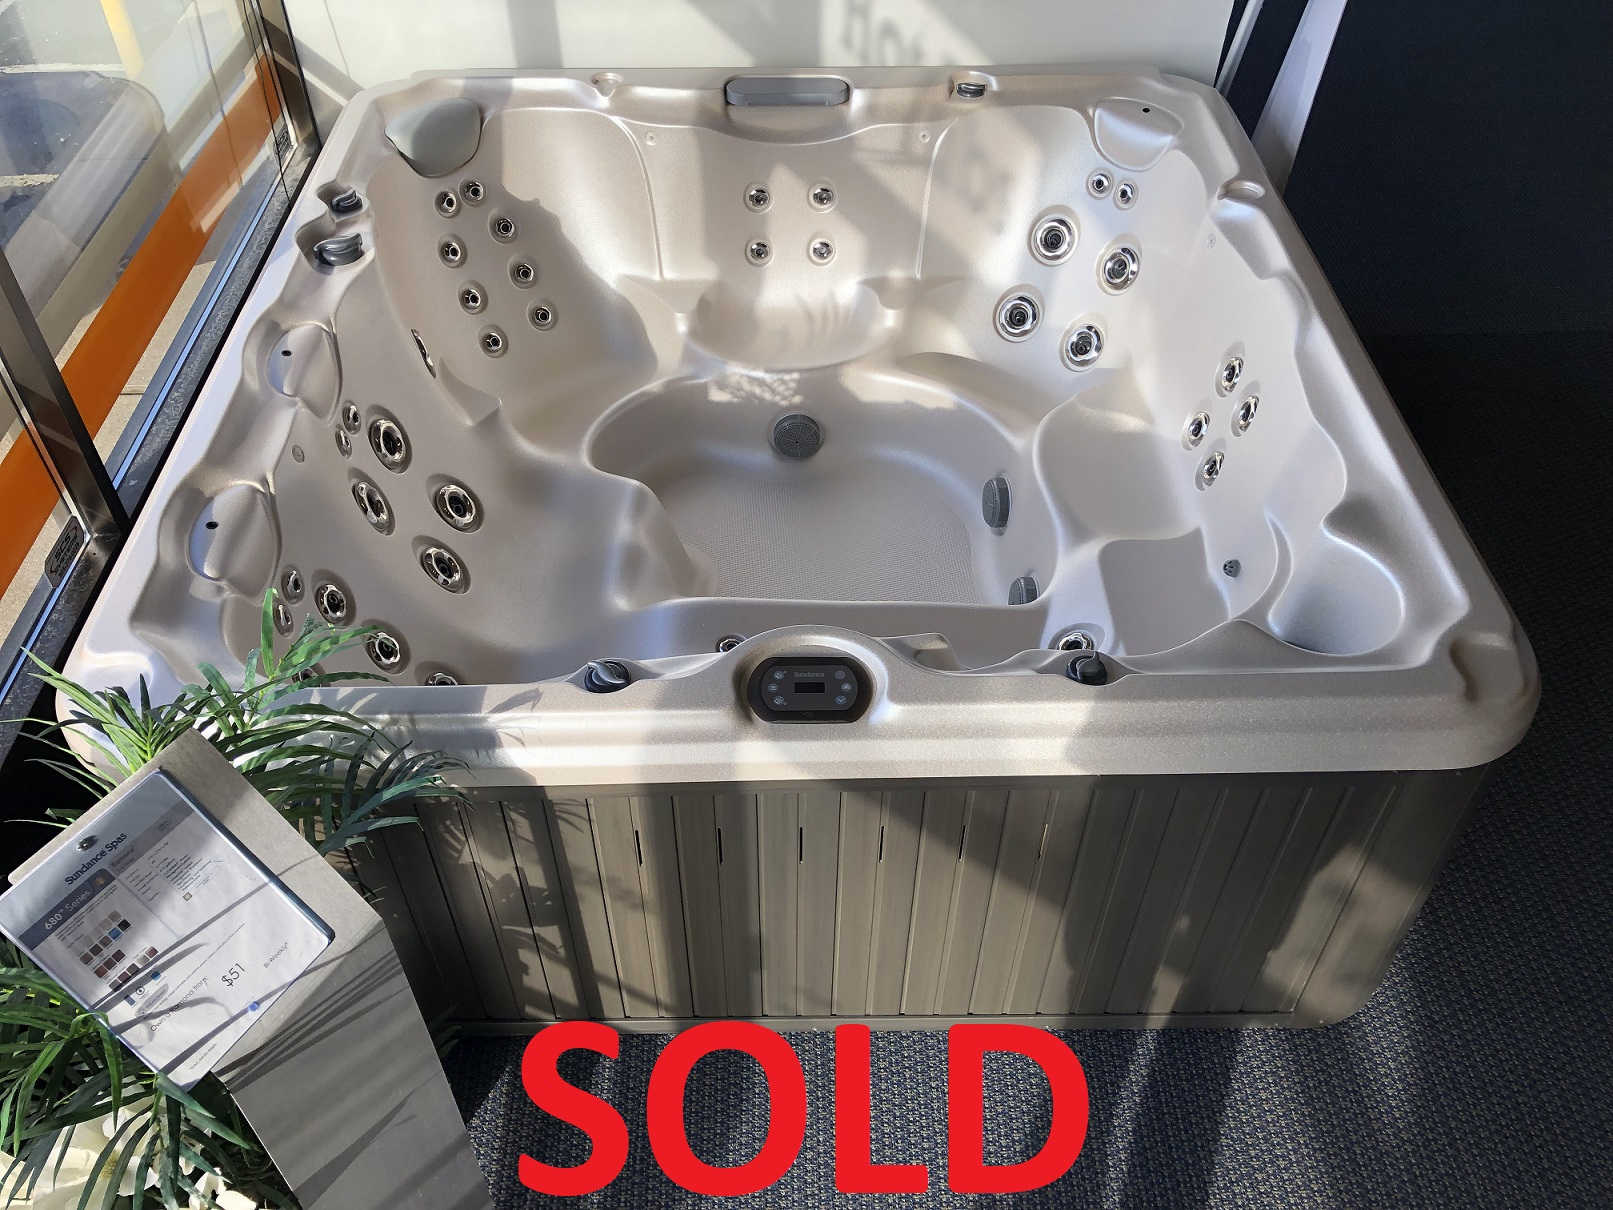 Sundance Spas 680 Series Ramona 6 person hot tub spa whirlpool jacuzzi lounger hot tubs spas near me St. Catharines Ontario